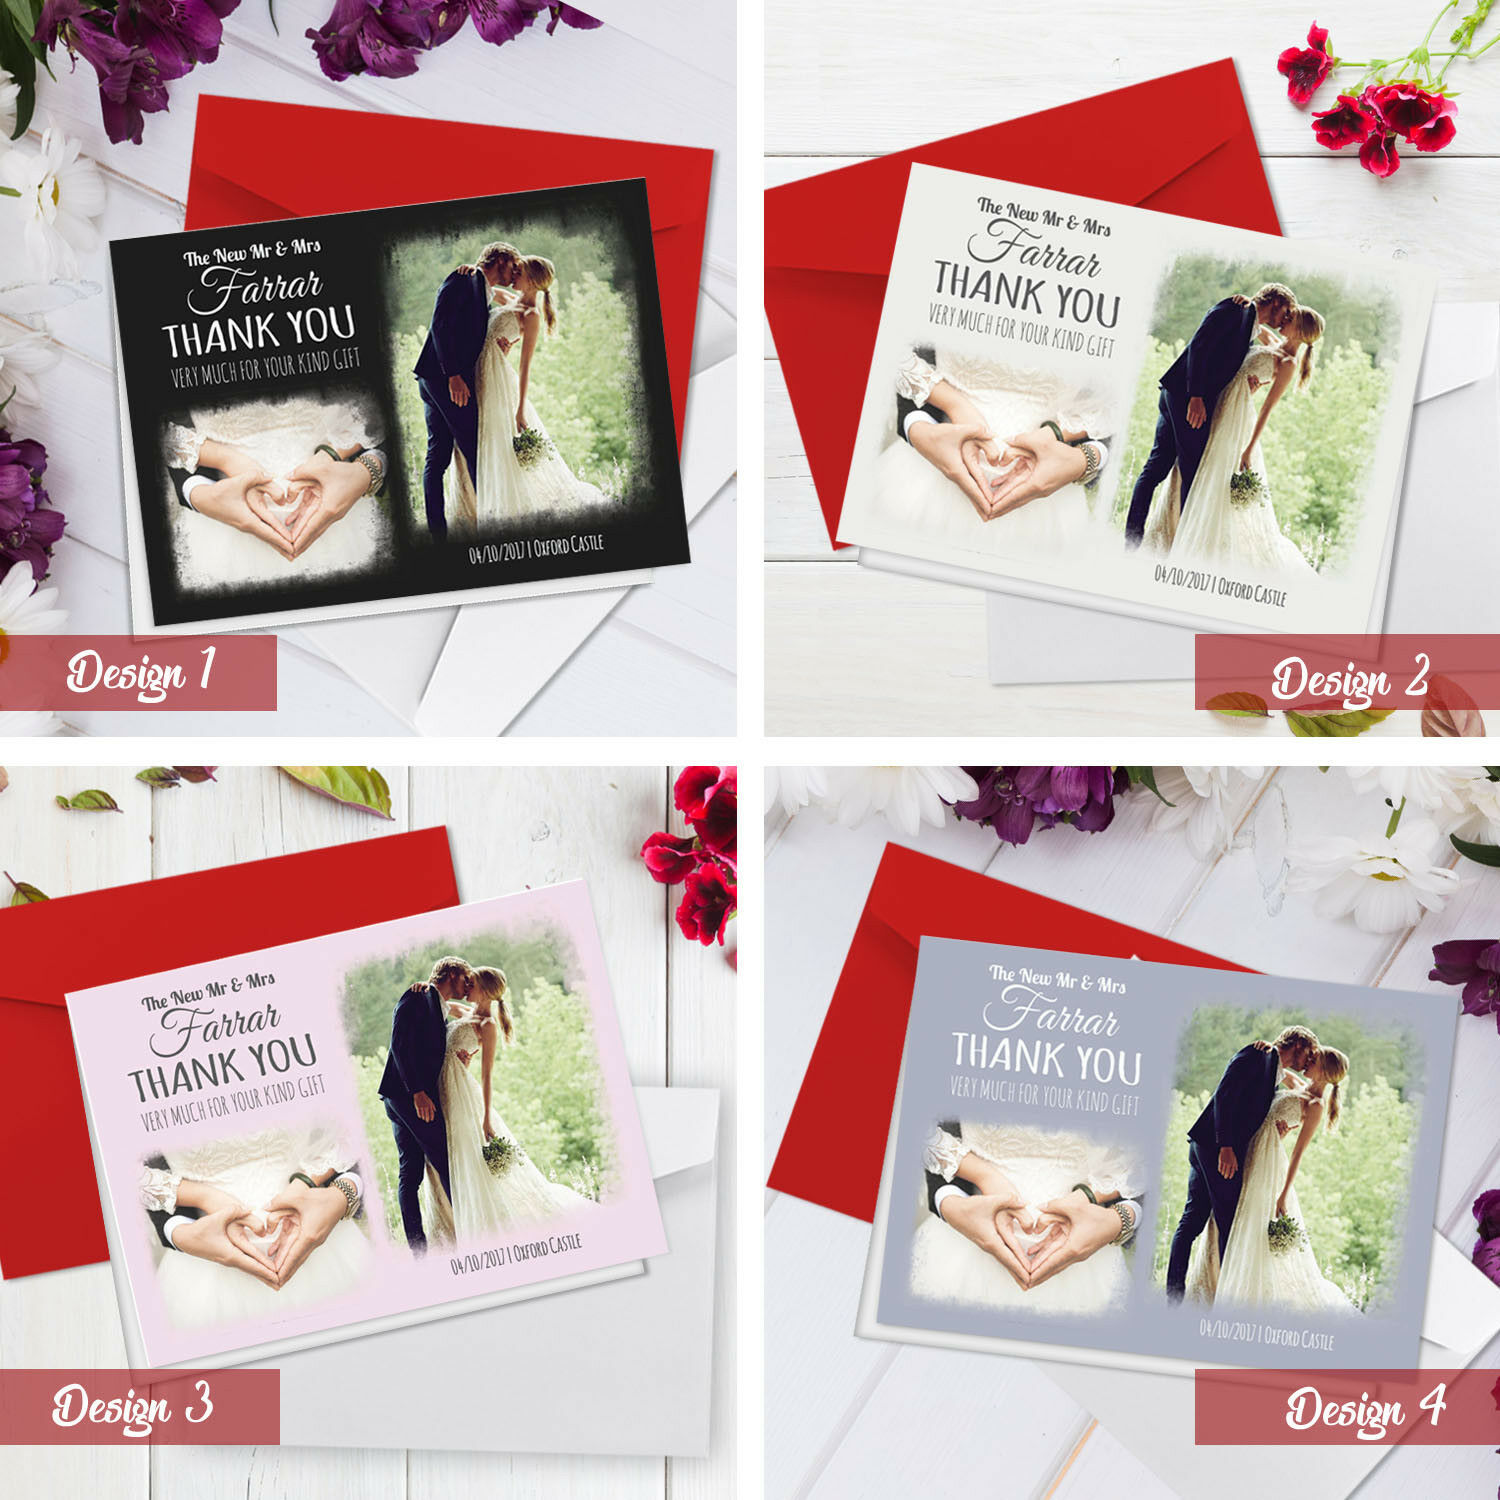 Personalised Wedding Thank You Cards   A5 Folded Cards With Photos + Envelopes